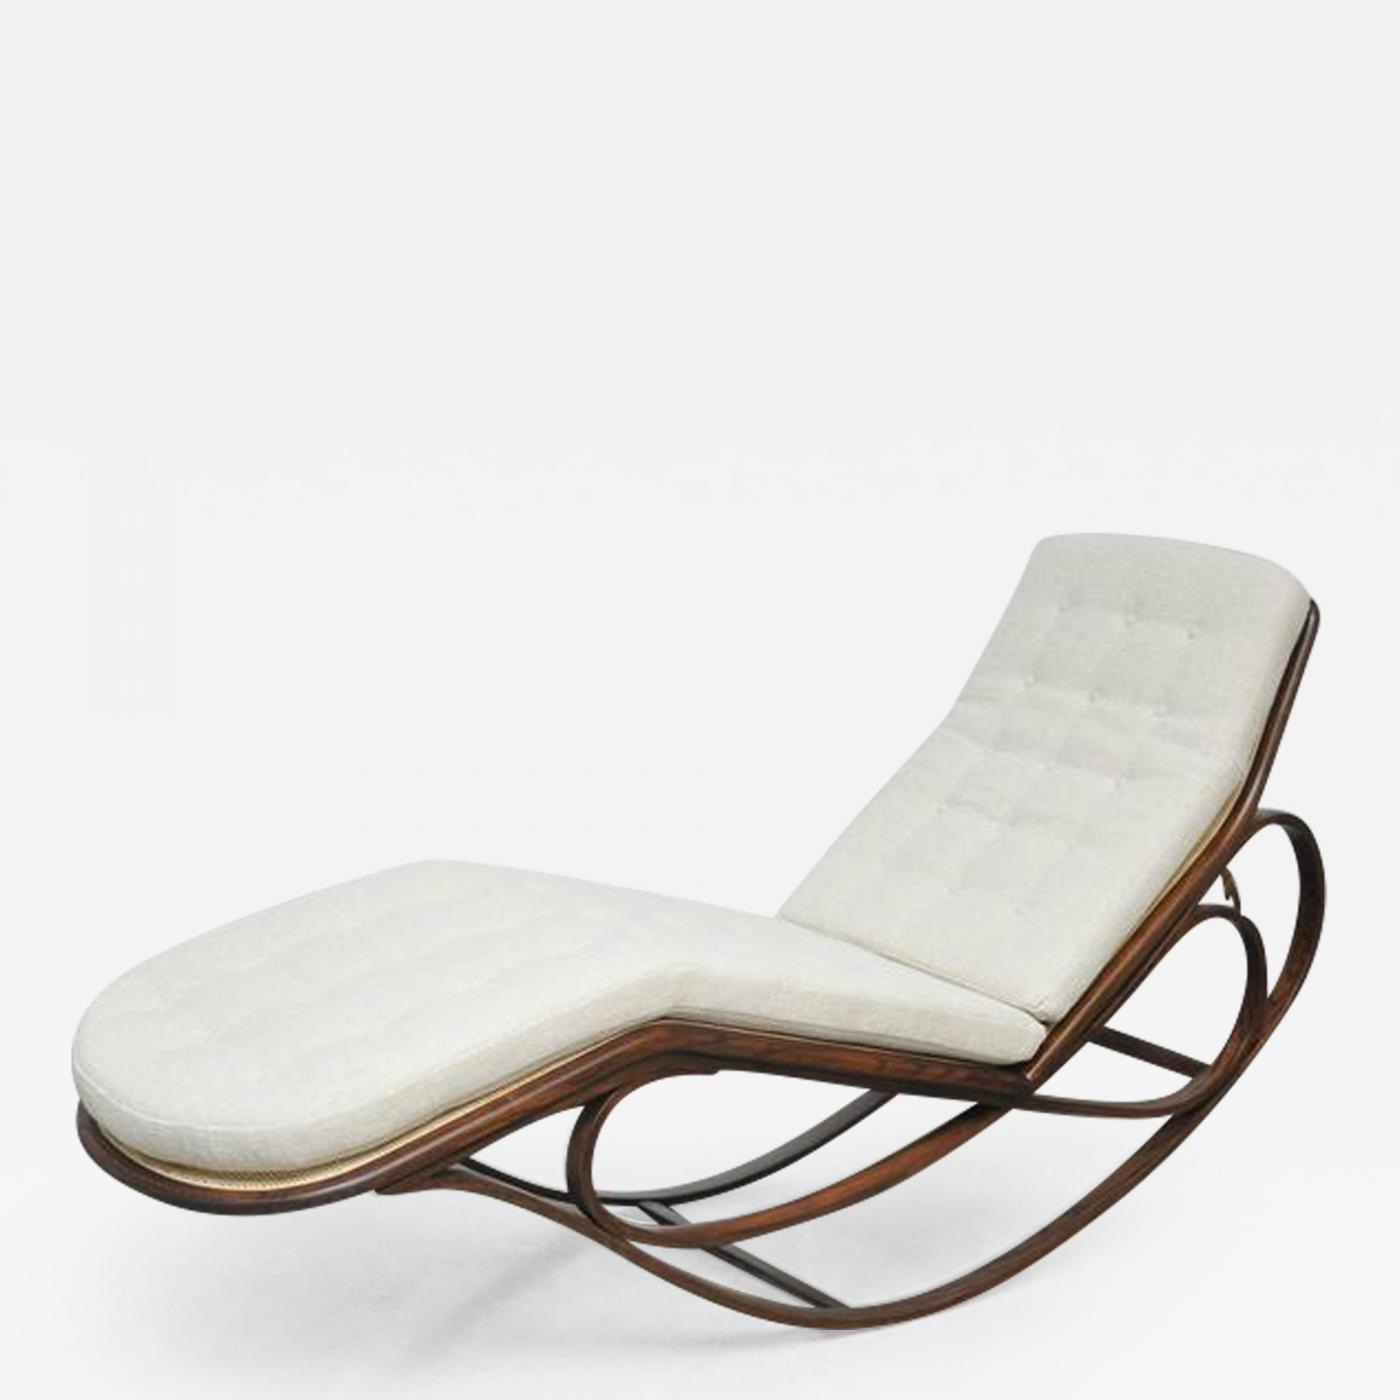 Tommy Bahama Outdoor Cushions, Edward Wormley Dunbar Rocking Chaise Lounge By Edward Wormley